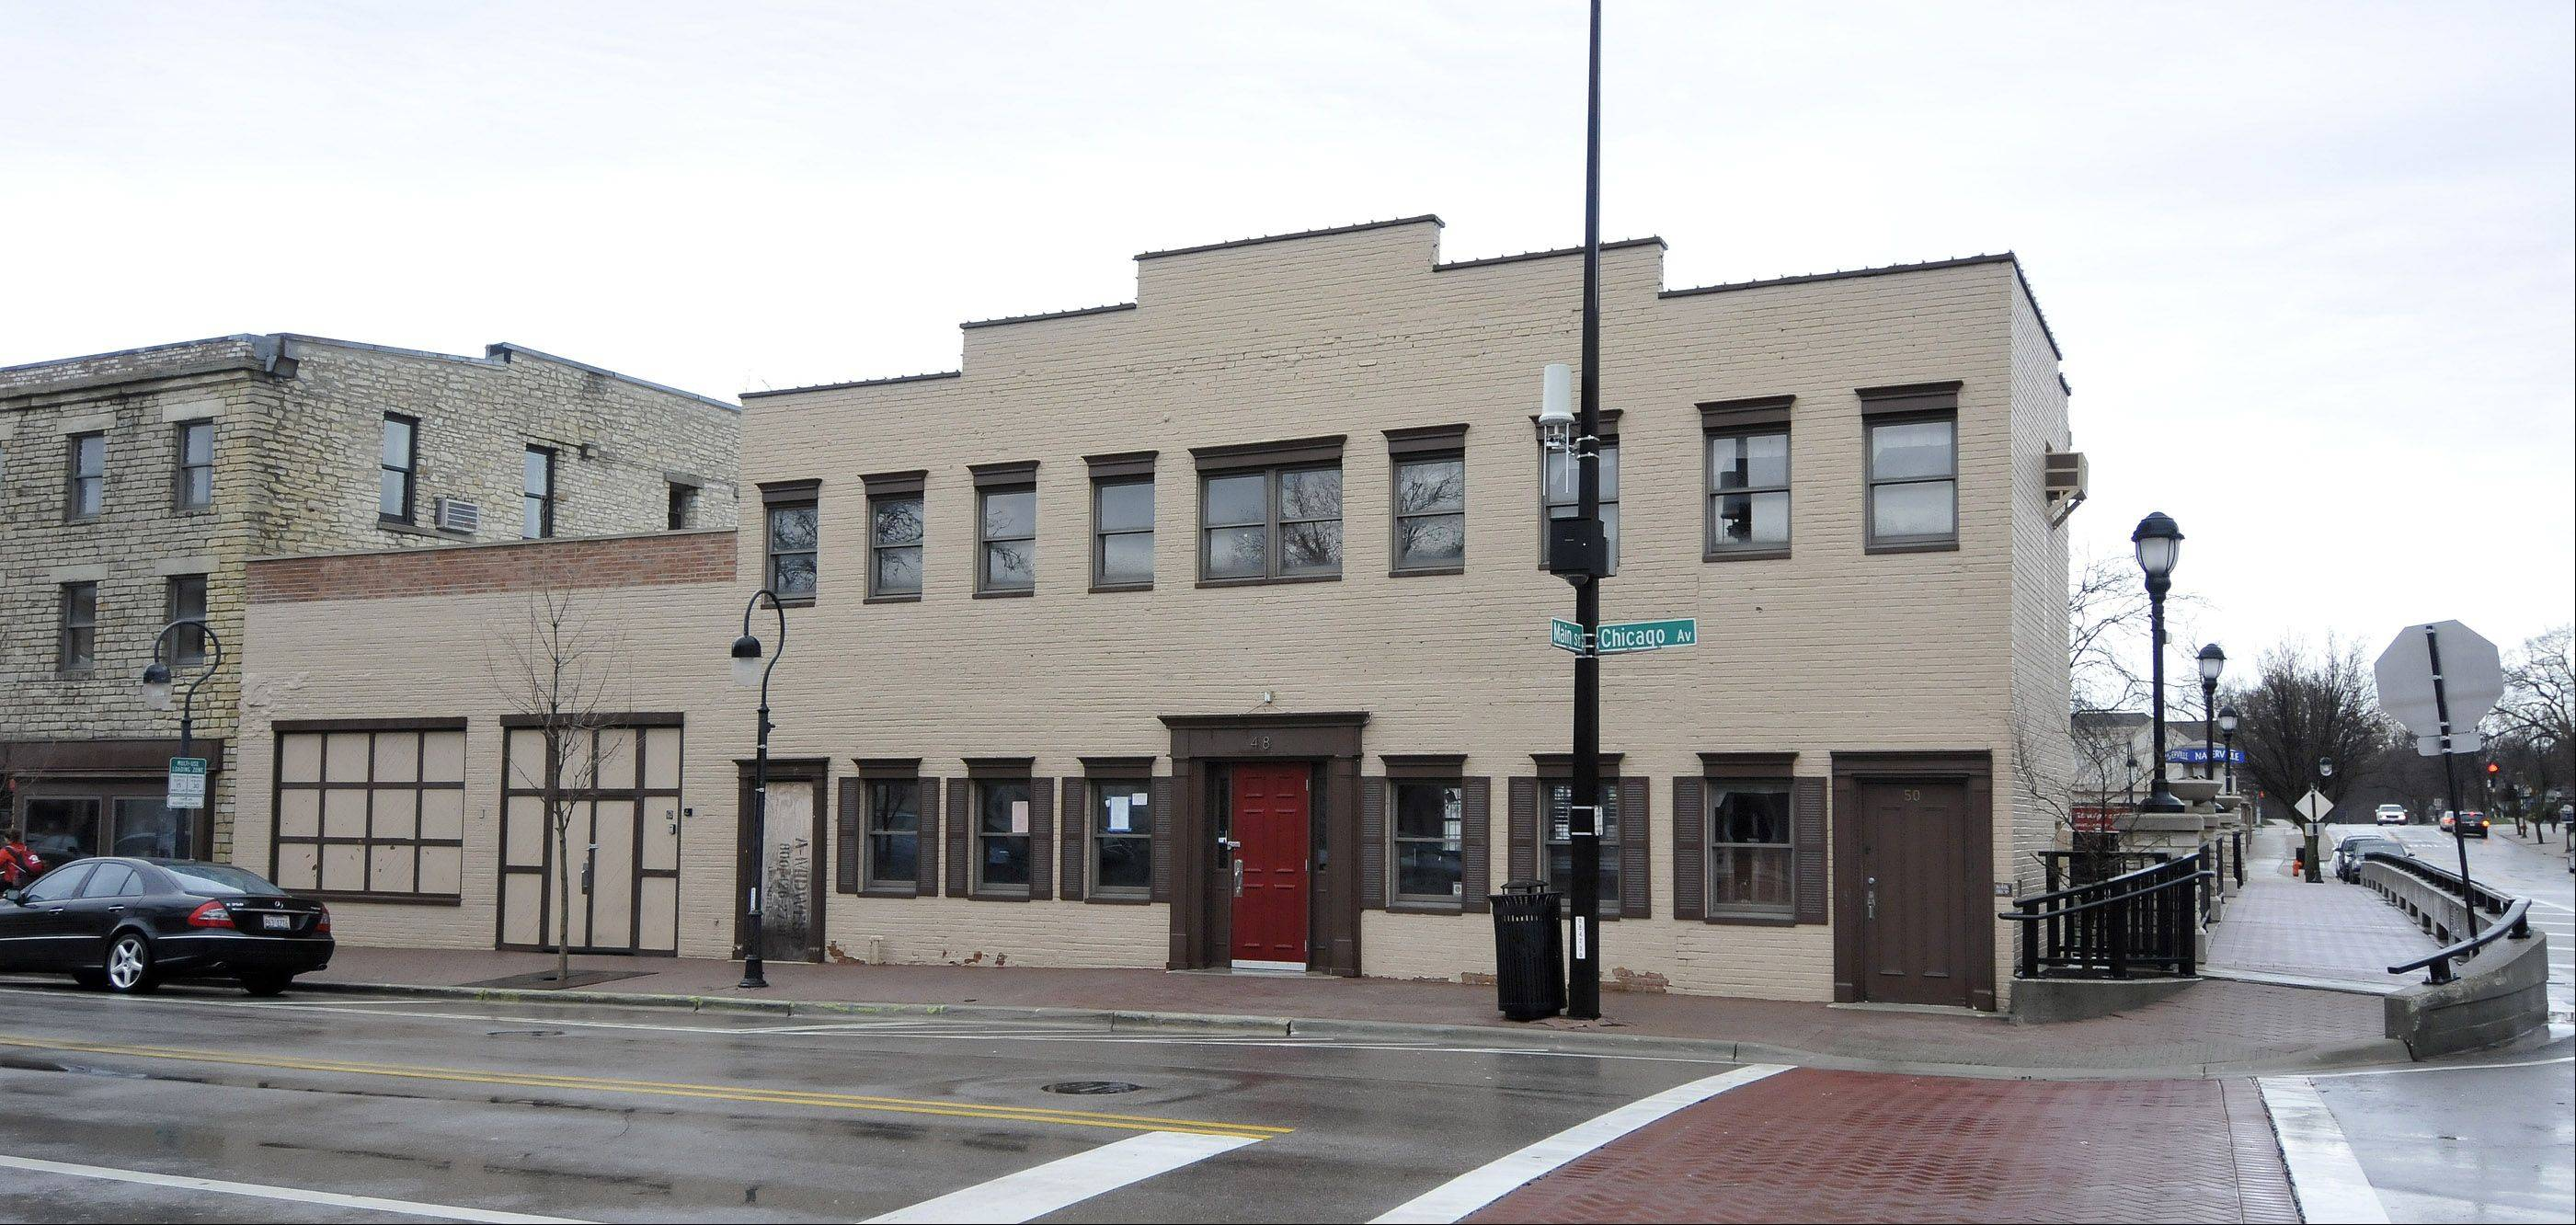 Naperville City Council members are struggling with whether to allow a new late-night liquor permit to allow Ballydoyle to open in the old Rosebud restaurant location at Chicago Avenue and Main Street.